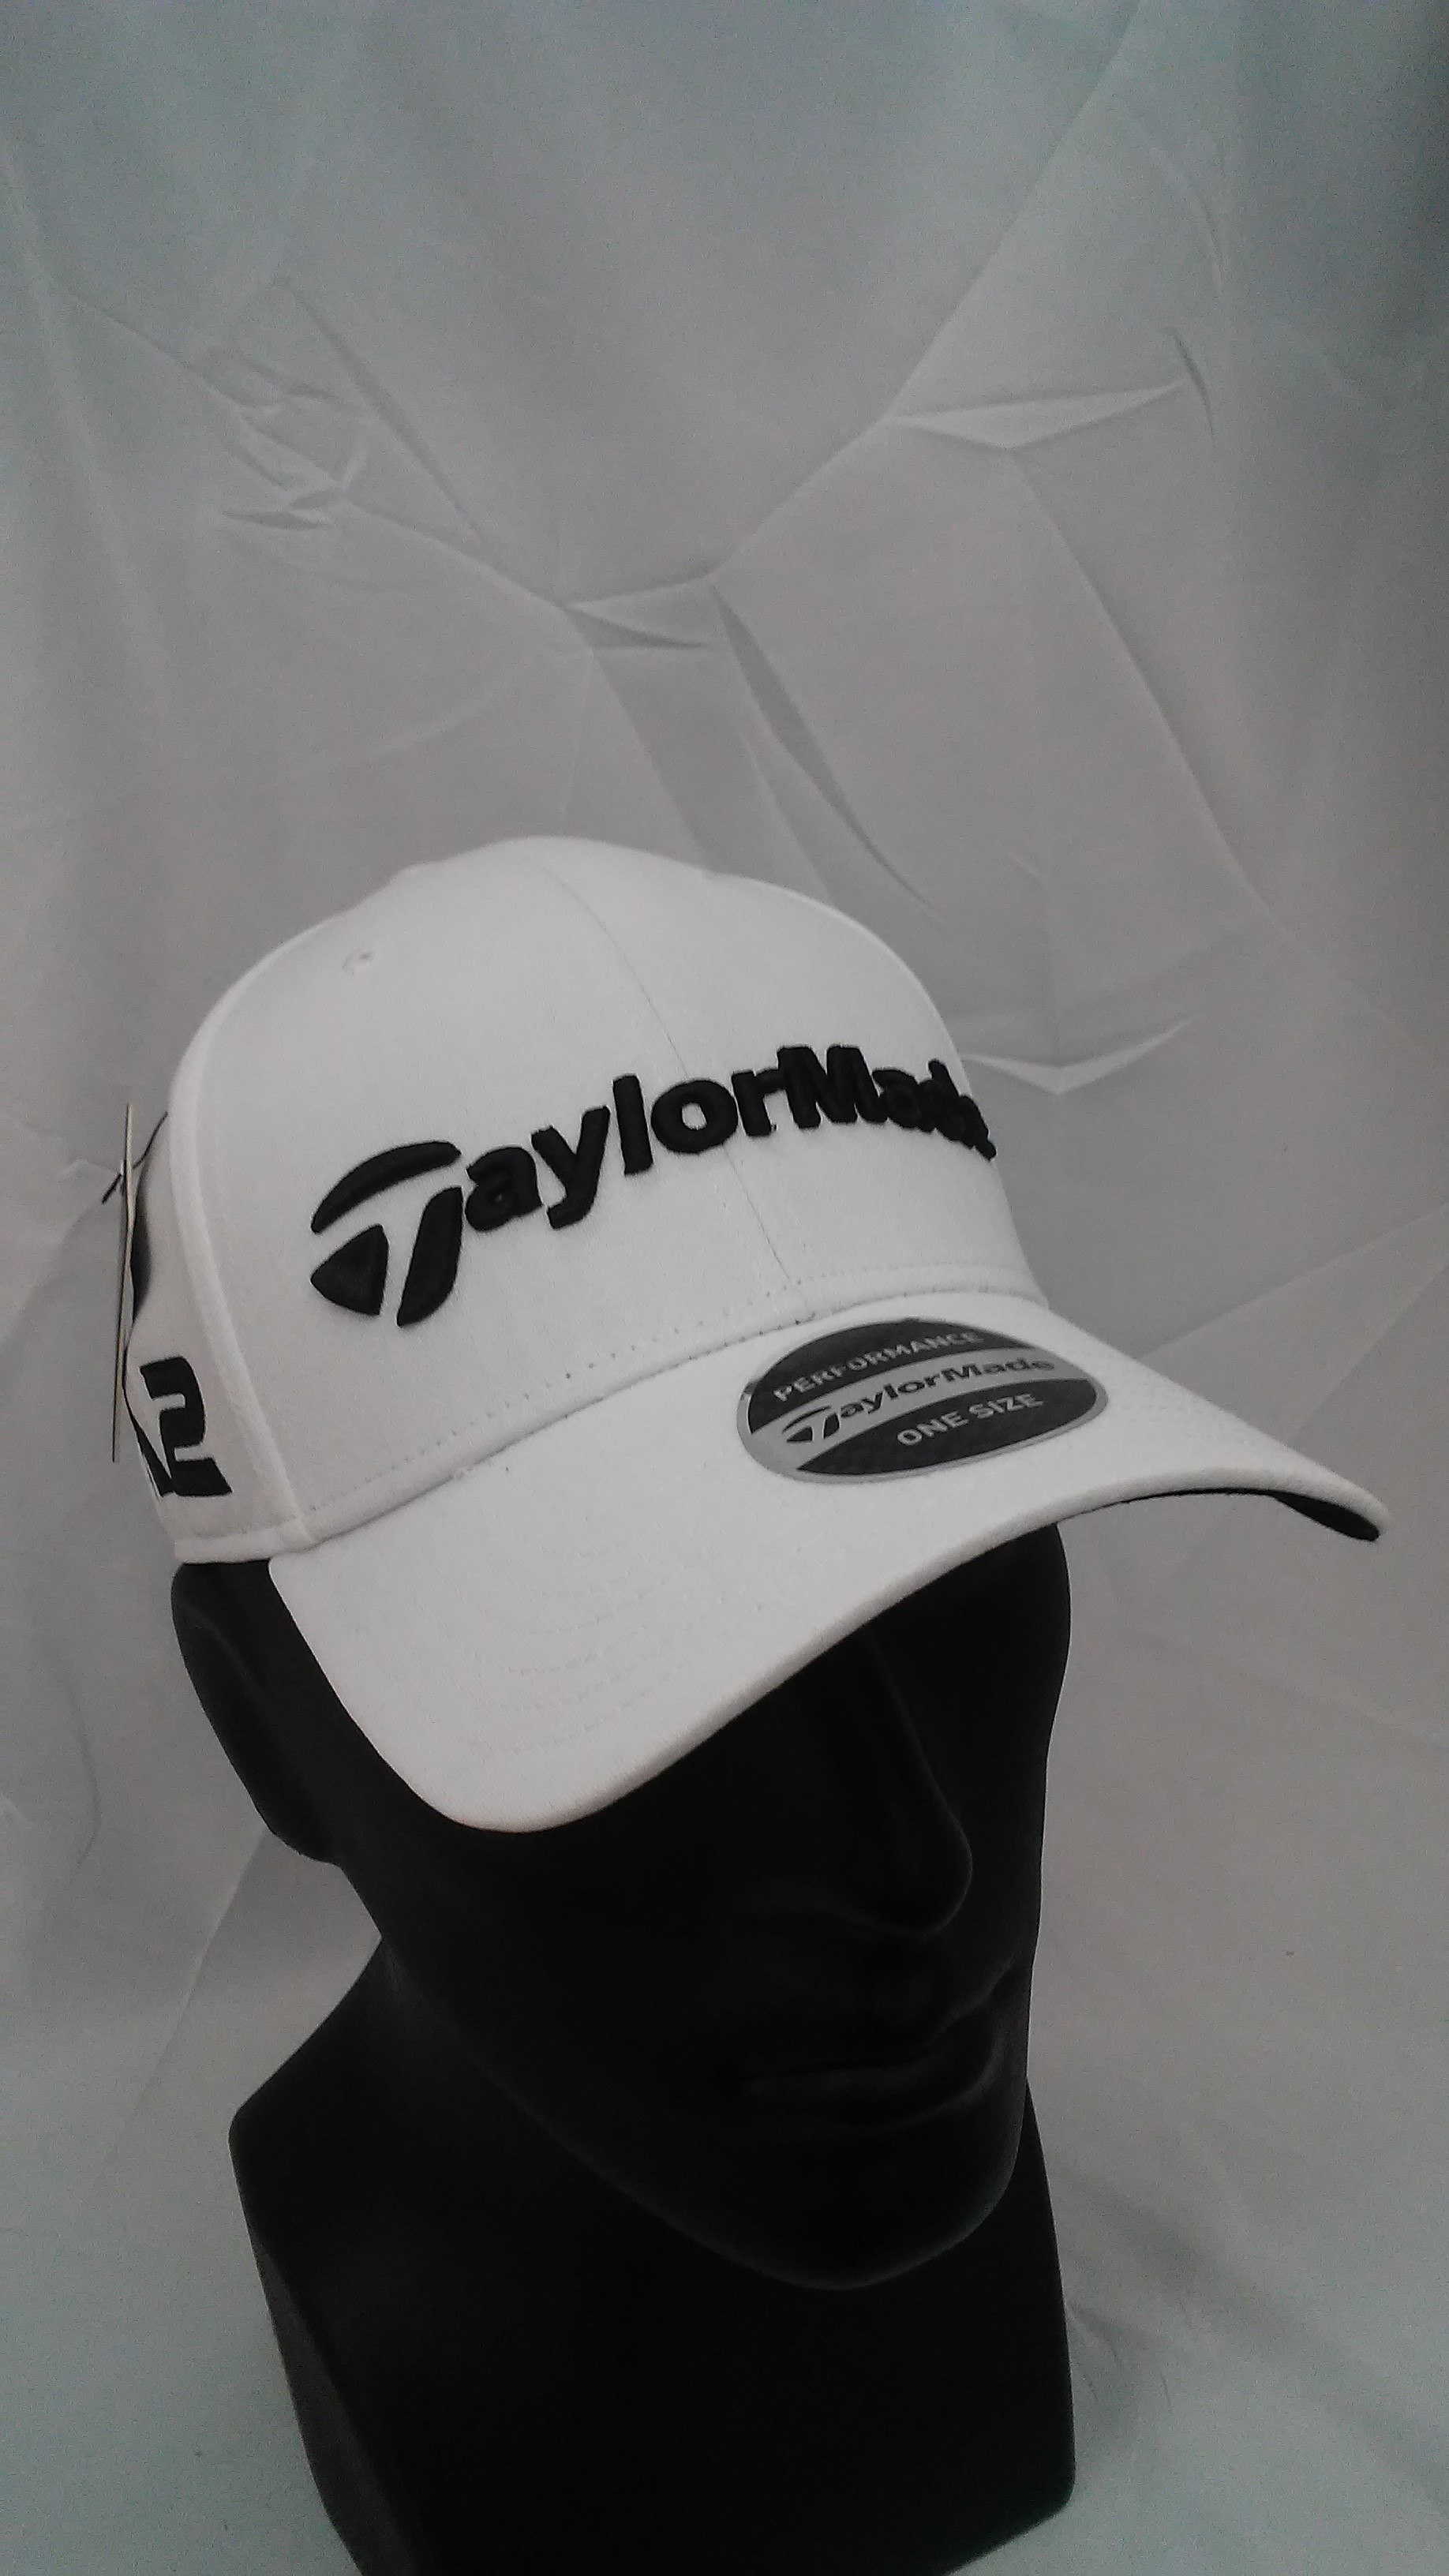 buy popular bf6d7 74237 Visit our eBay Store for more great deals  Hurricane Golf Men s TaylorMade  Golf 2017 Tour Radar Adjustable Cap TR White M1   M2 Logos BUY IT NOW  7.99!